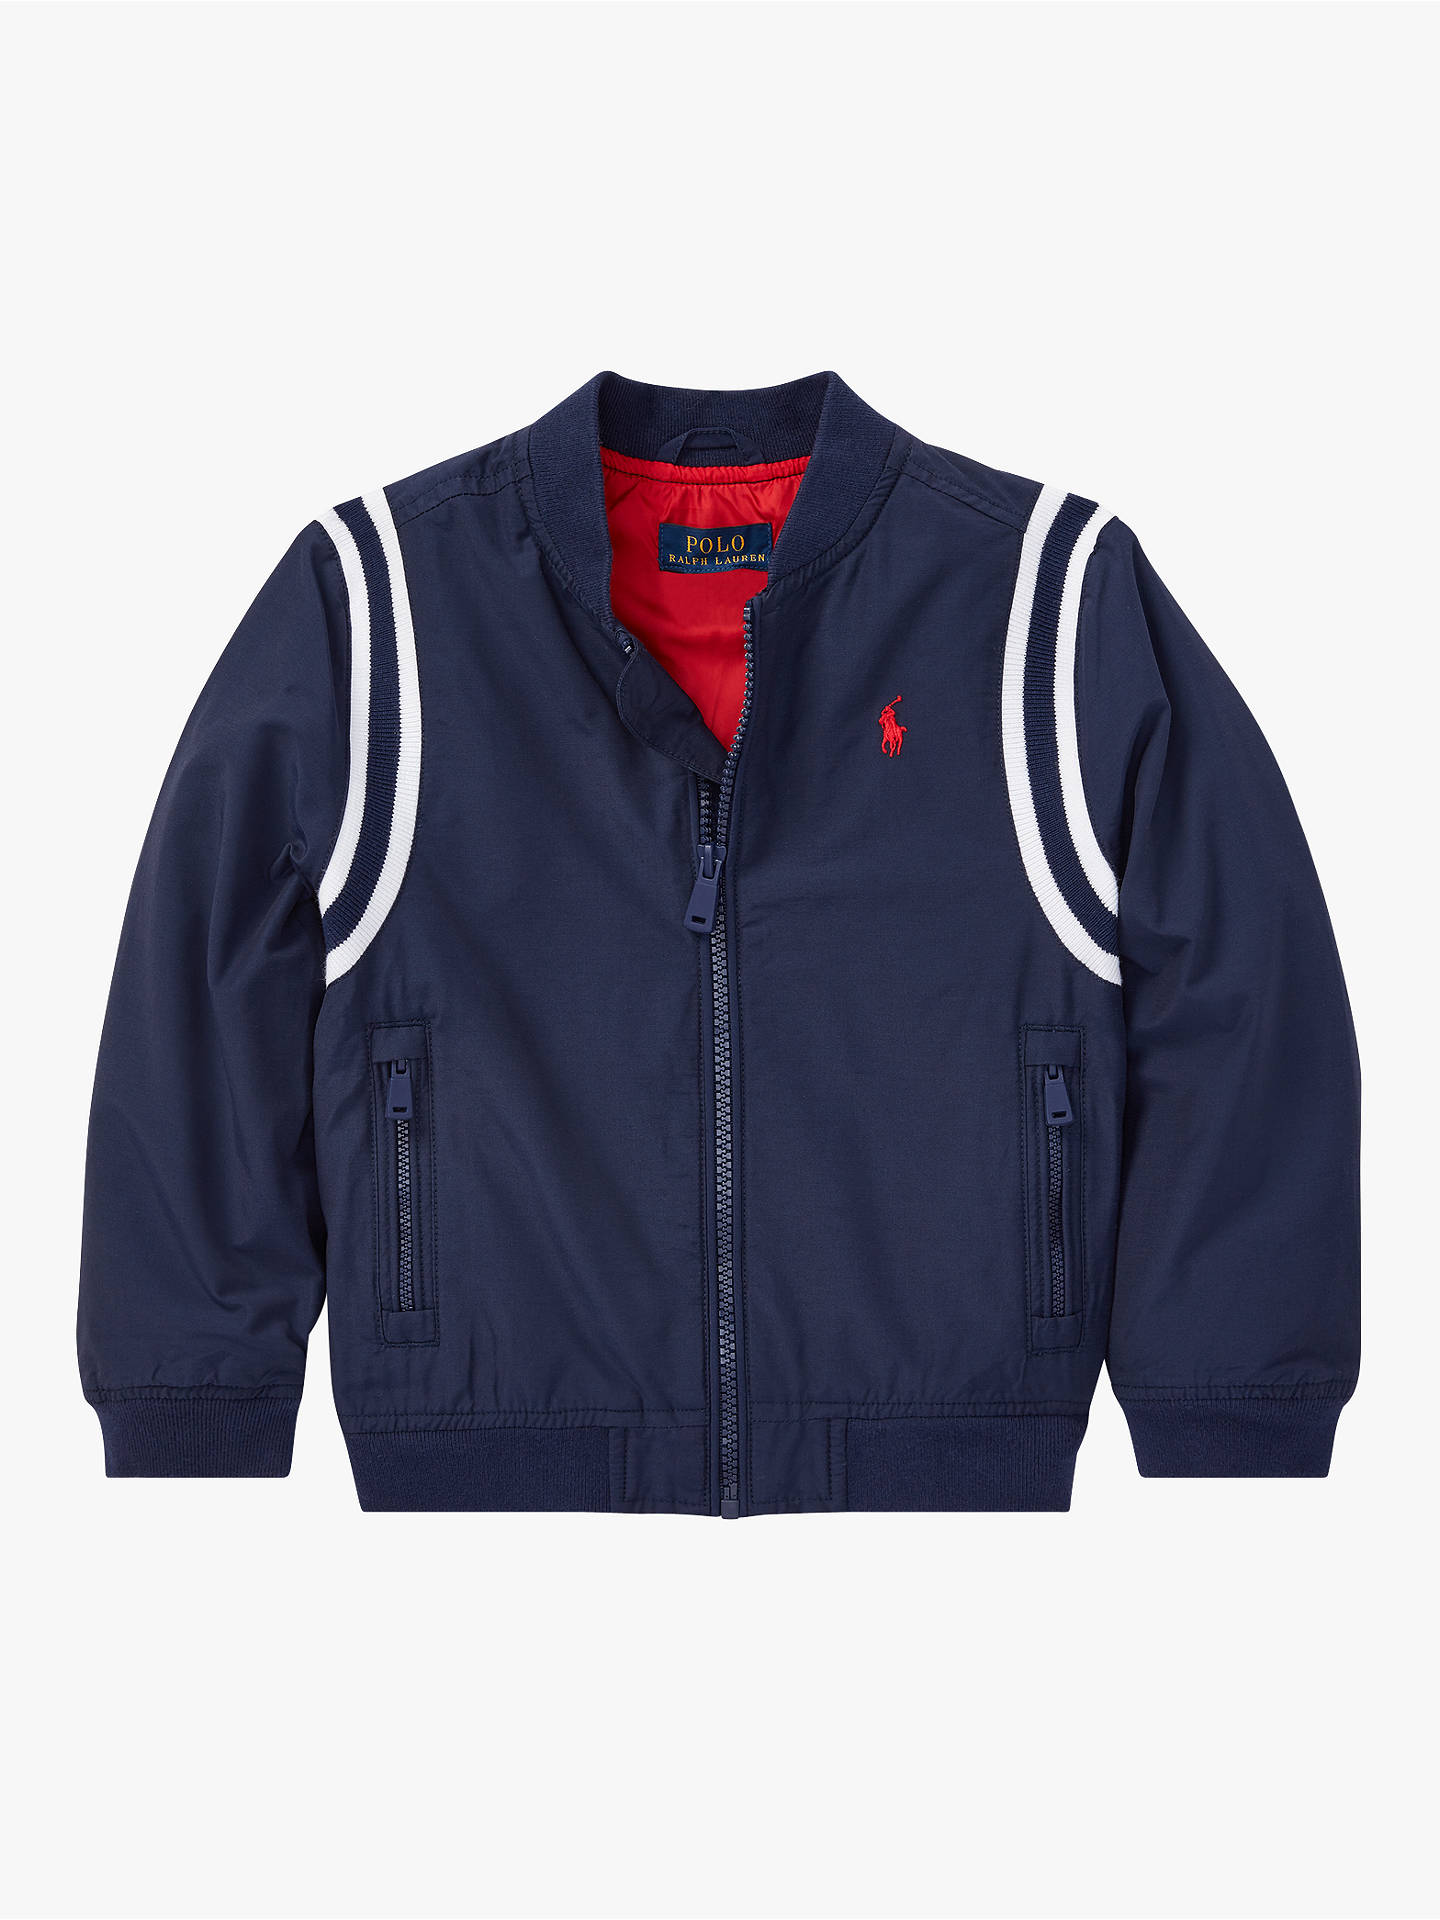 865ceb9dd Buy Polo Ralph Lauren Boys' Windbreaker Jacket, Navy, 2 years Online at  johnlewis ...